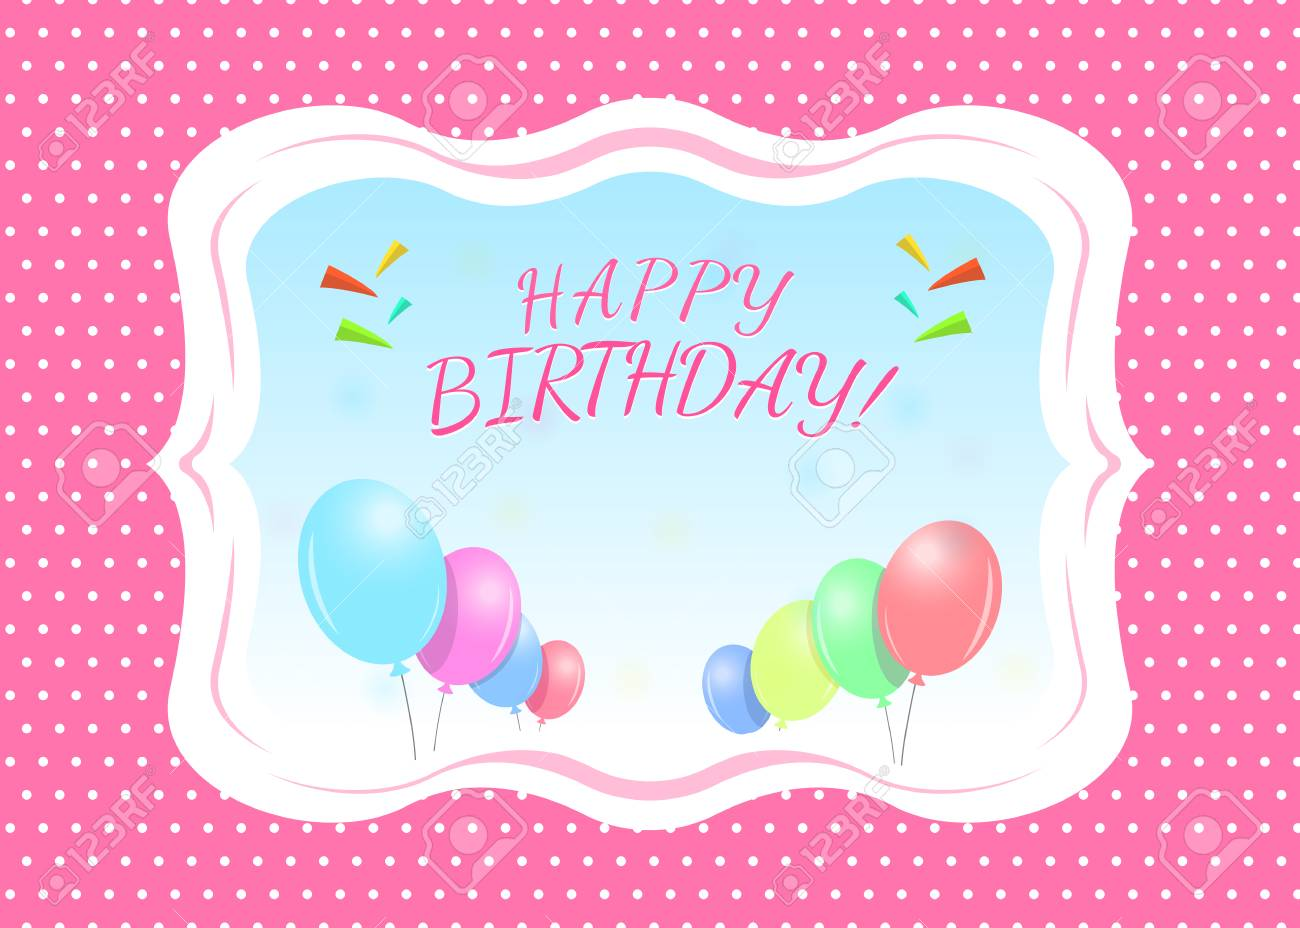 Birthday Wishes Card With Name - Card Design Template